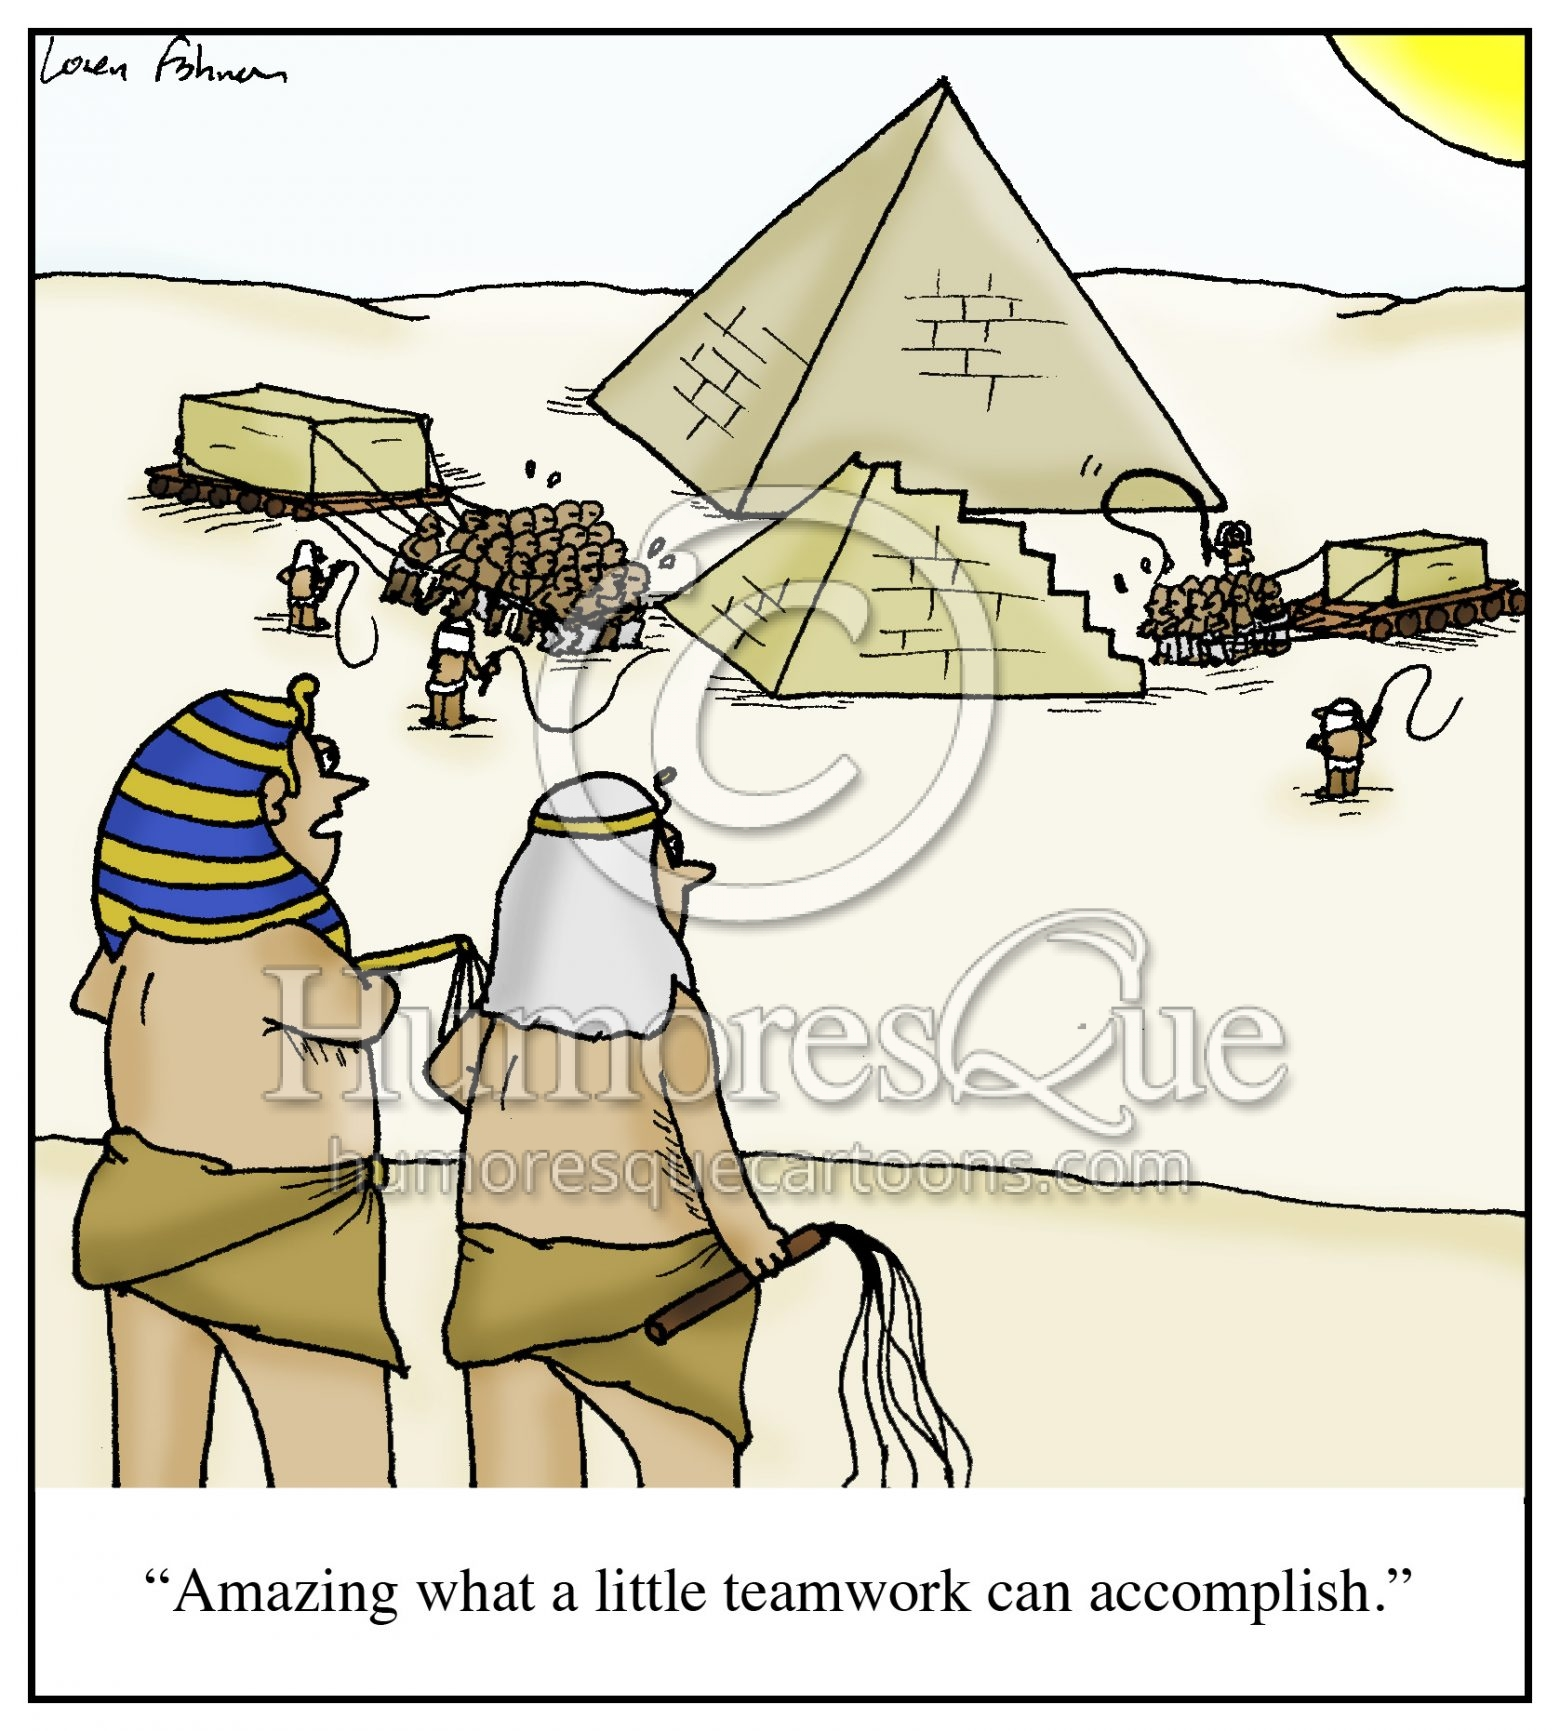 pyramid teamwork cartoon